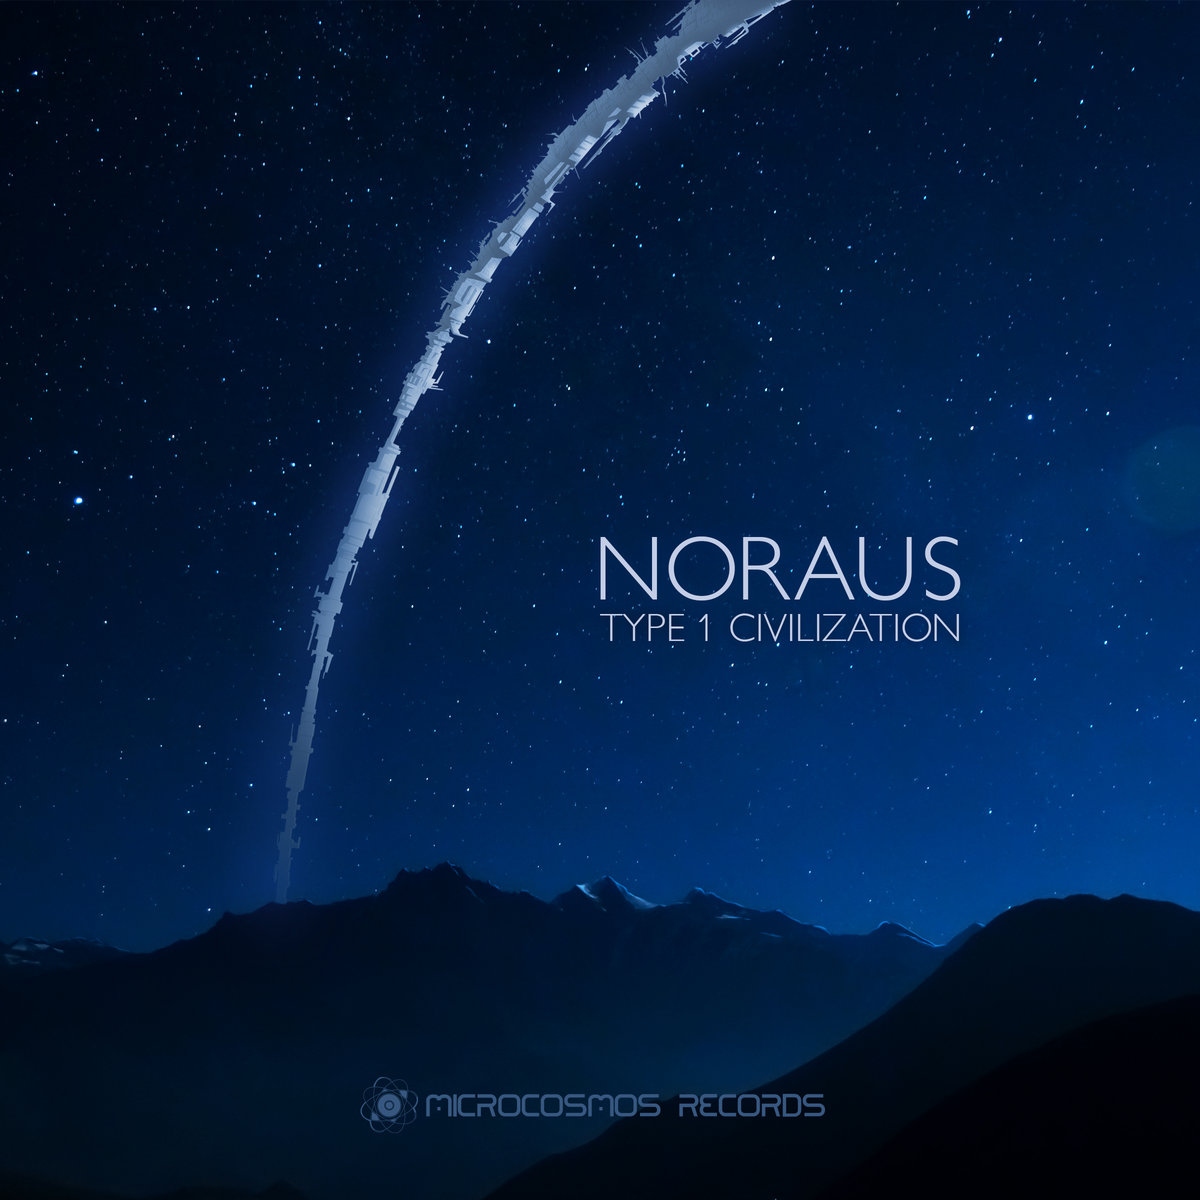 Noraus - The Incredible Adventures Of A Microbe A @ 'Type 1 Civilization' album (ambient, chill-out)